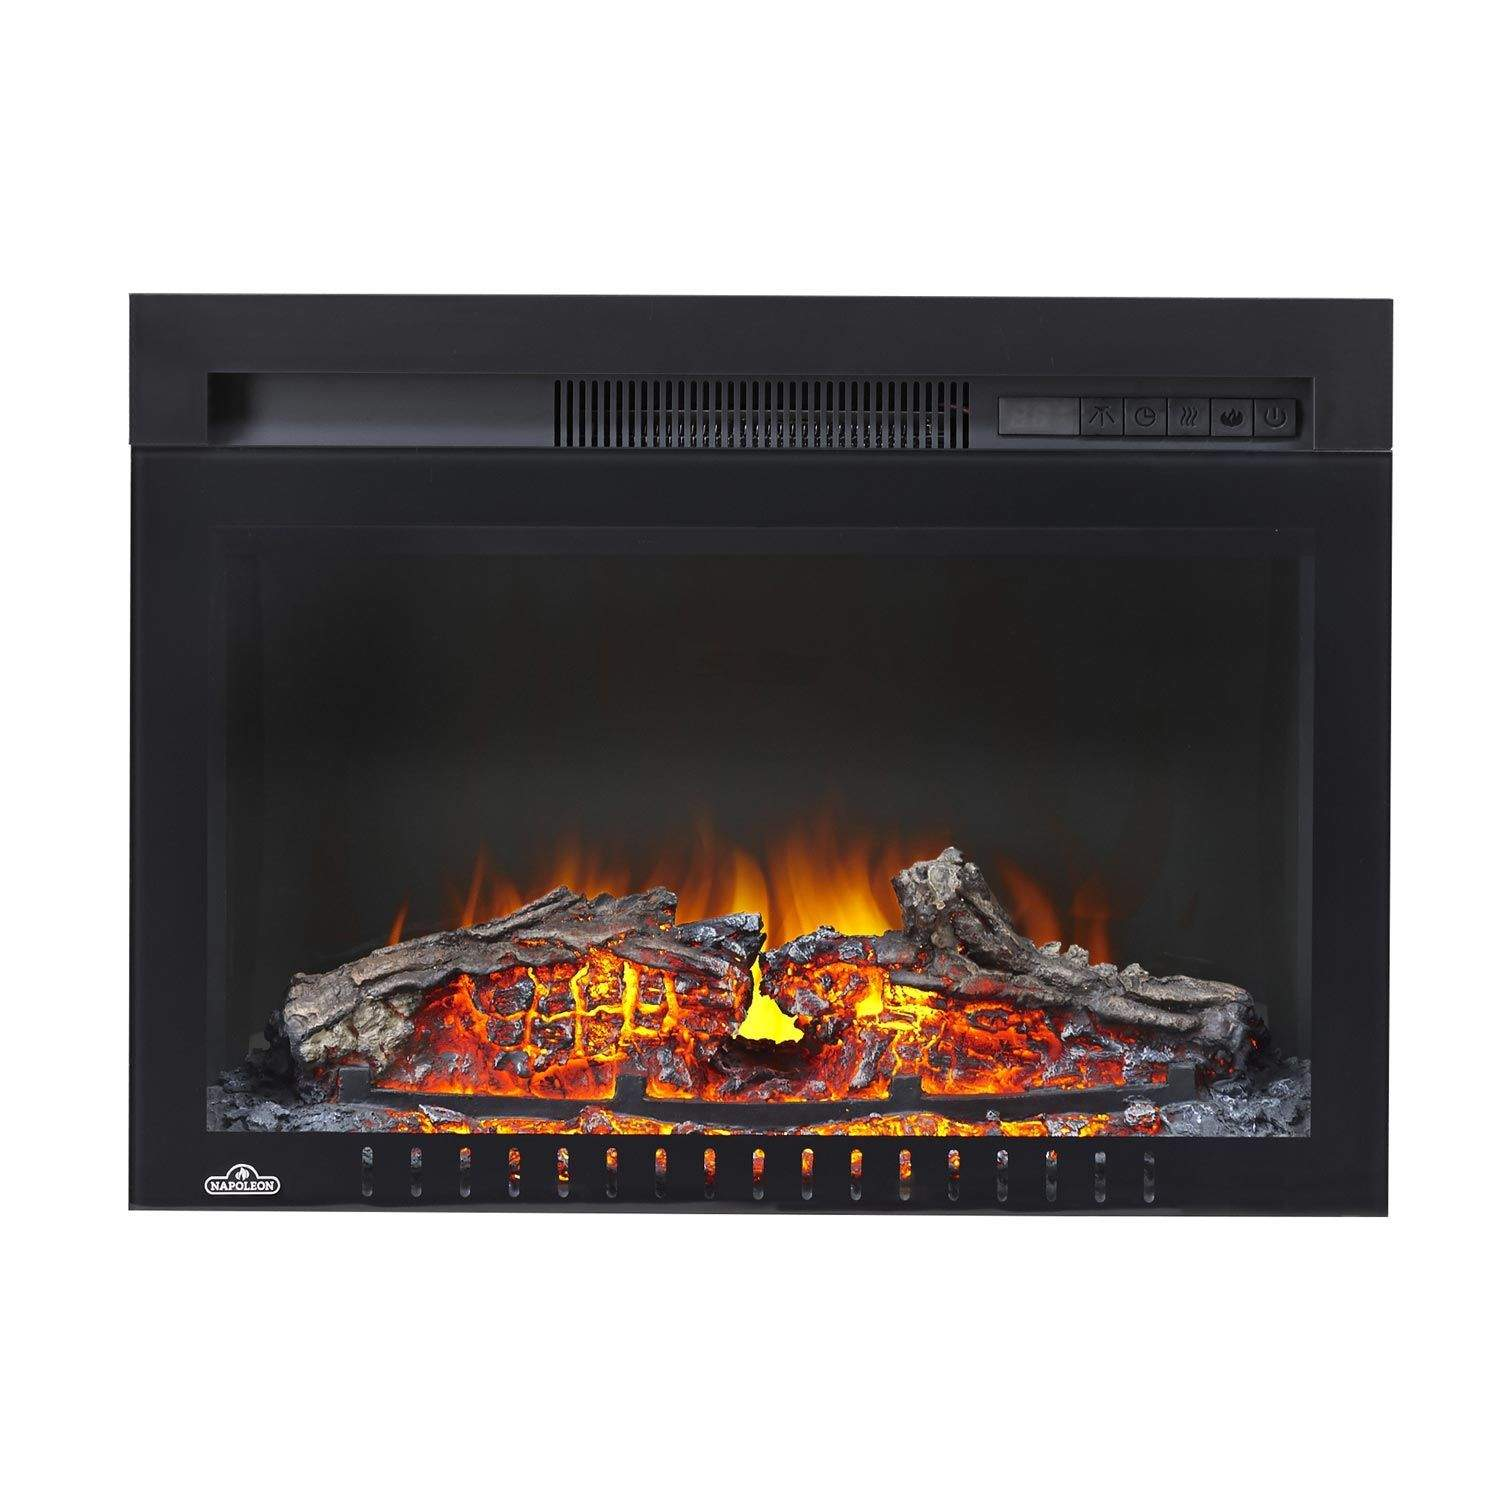 Napoleon Nefb24h 3a Cinema Series Built In Electric Fireplace 24 Inch New Ebay